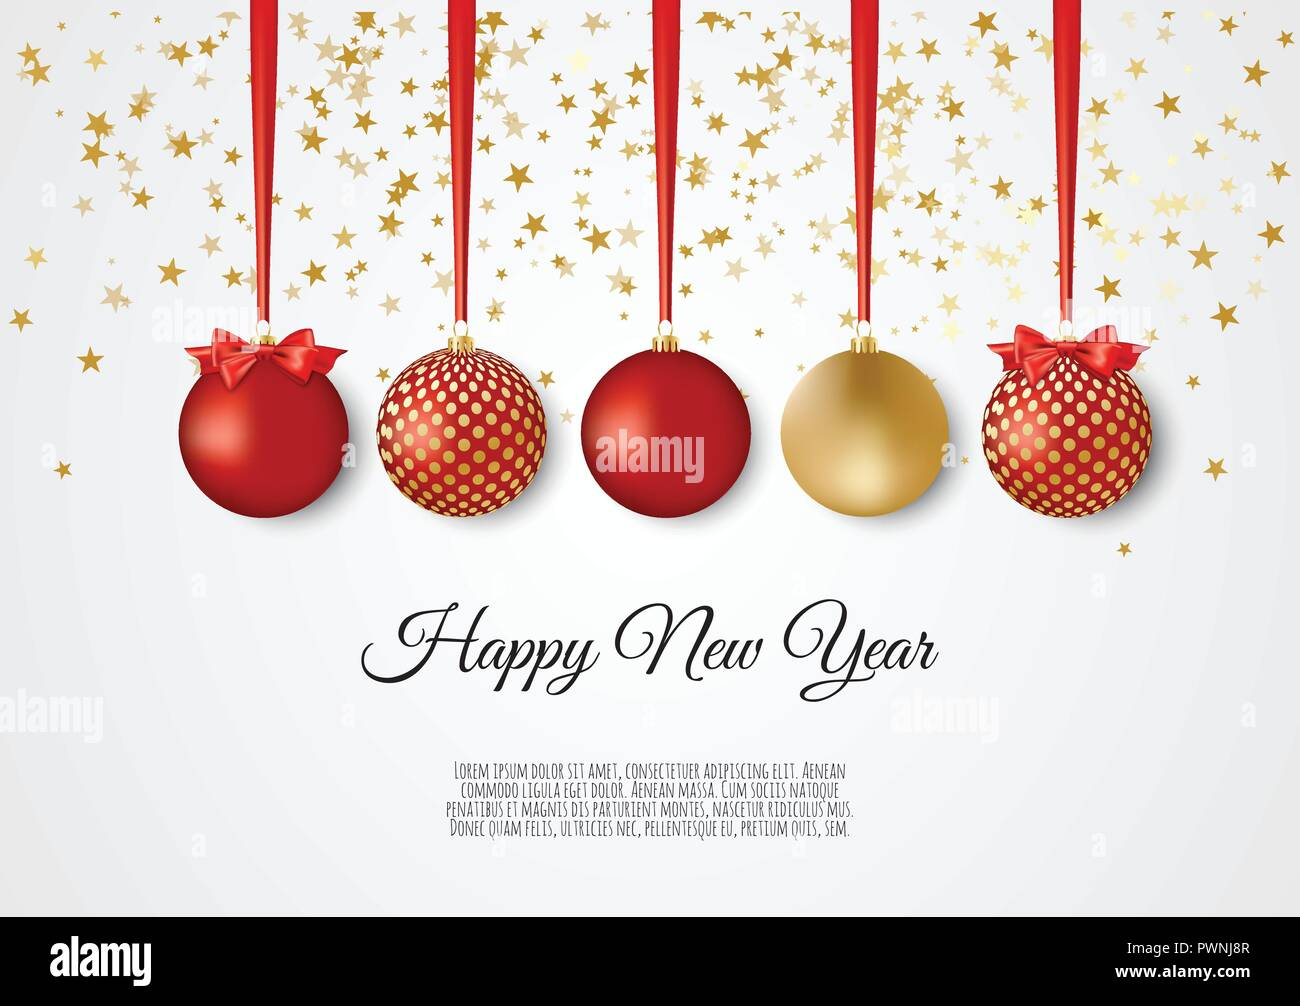 stock vector enlarge gold and red decorative christmas balls new year background